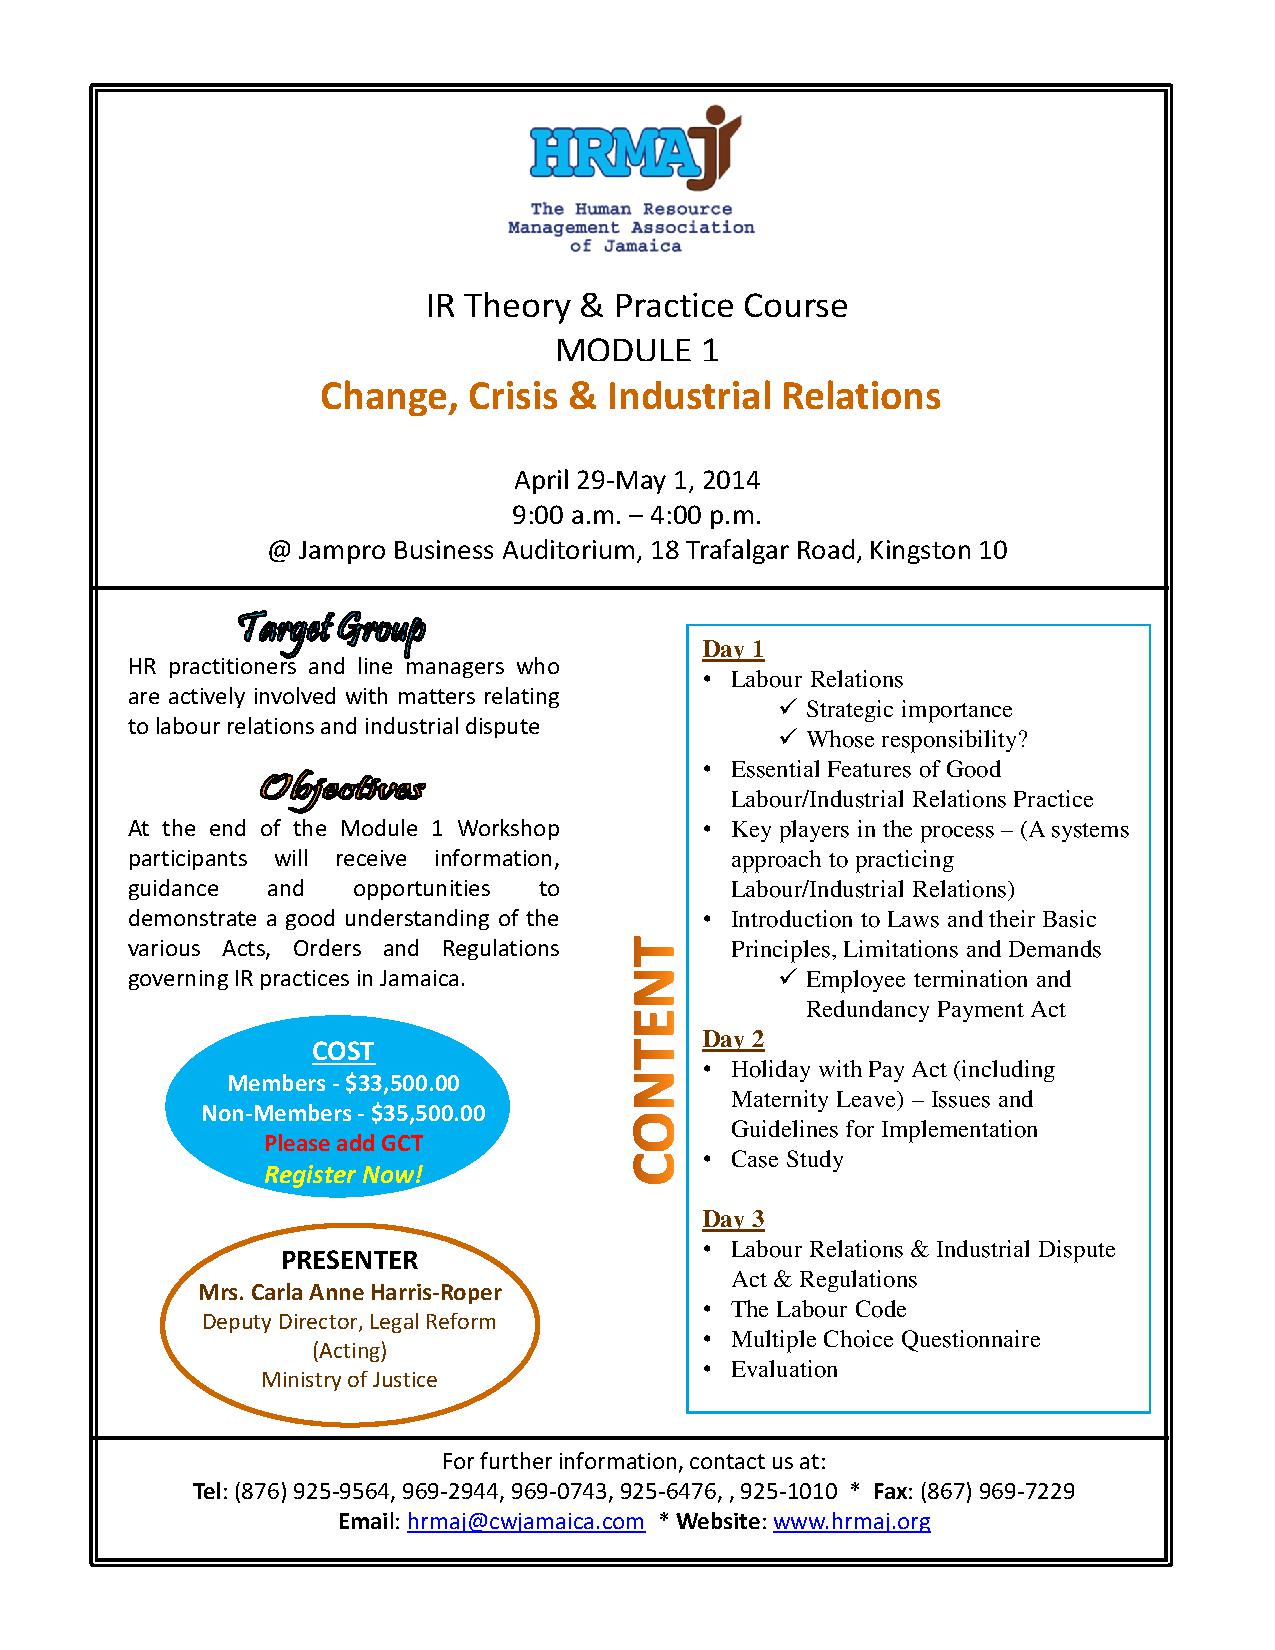 IR Theory Practice Course Flyer (Module 1)